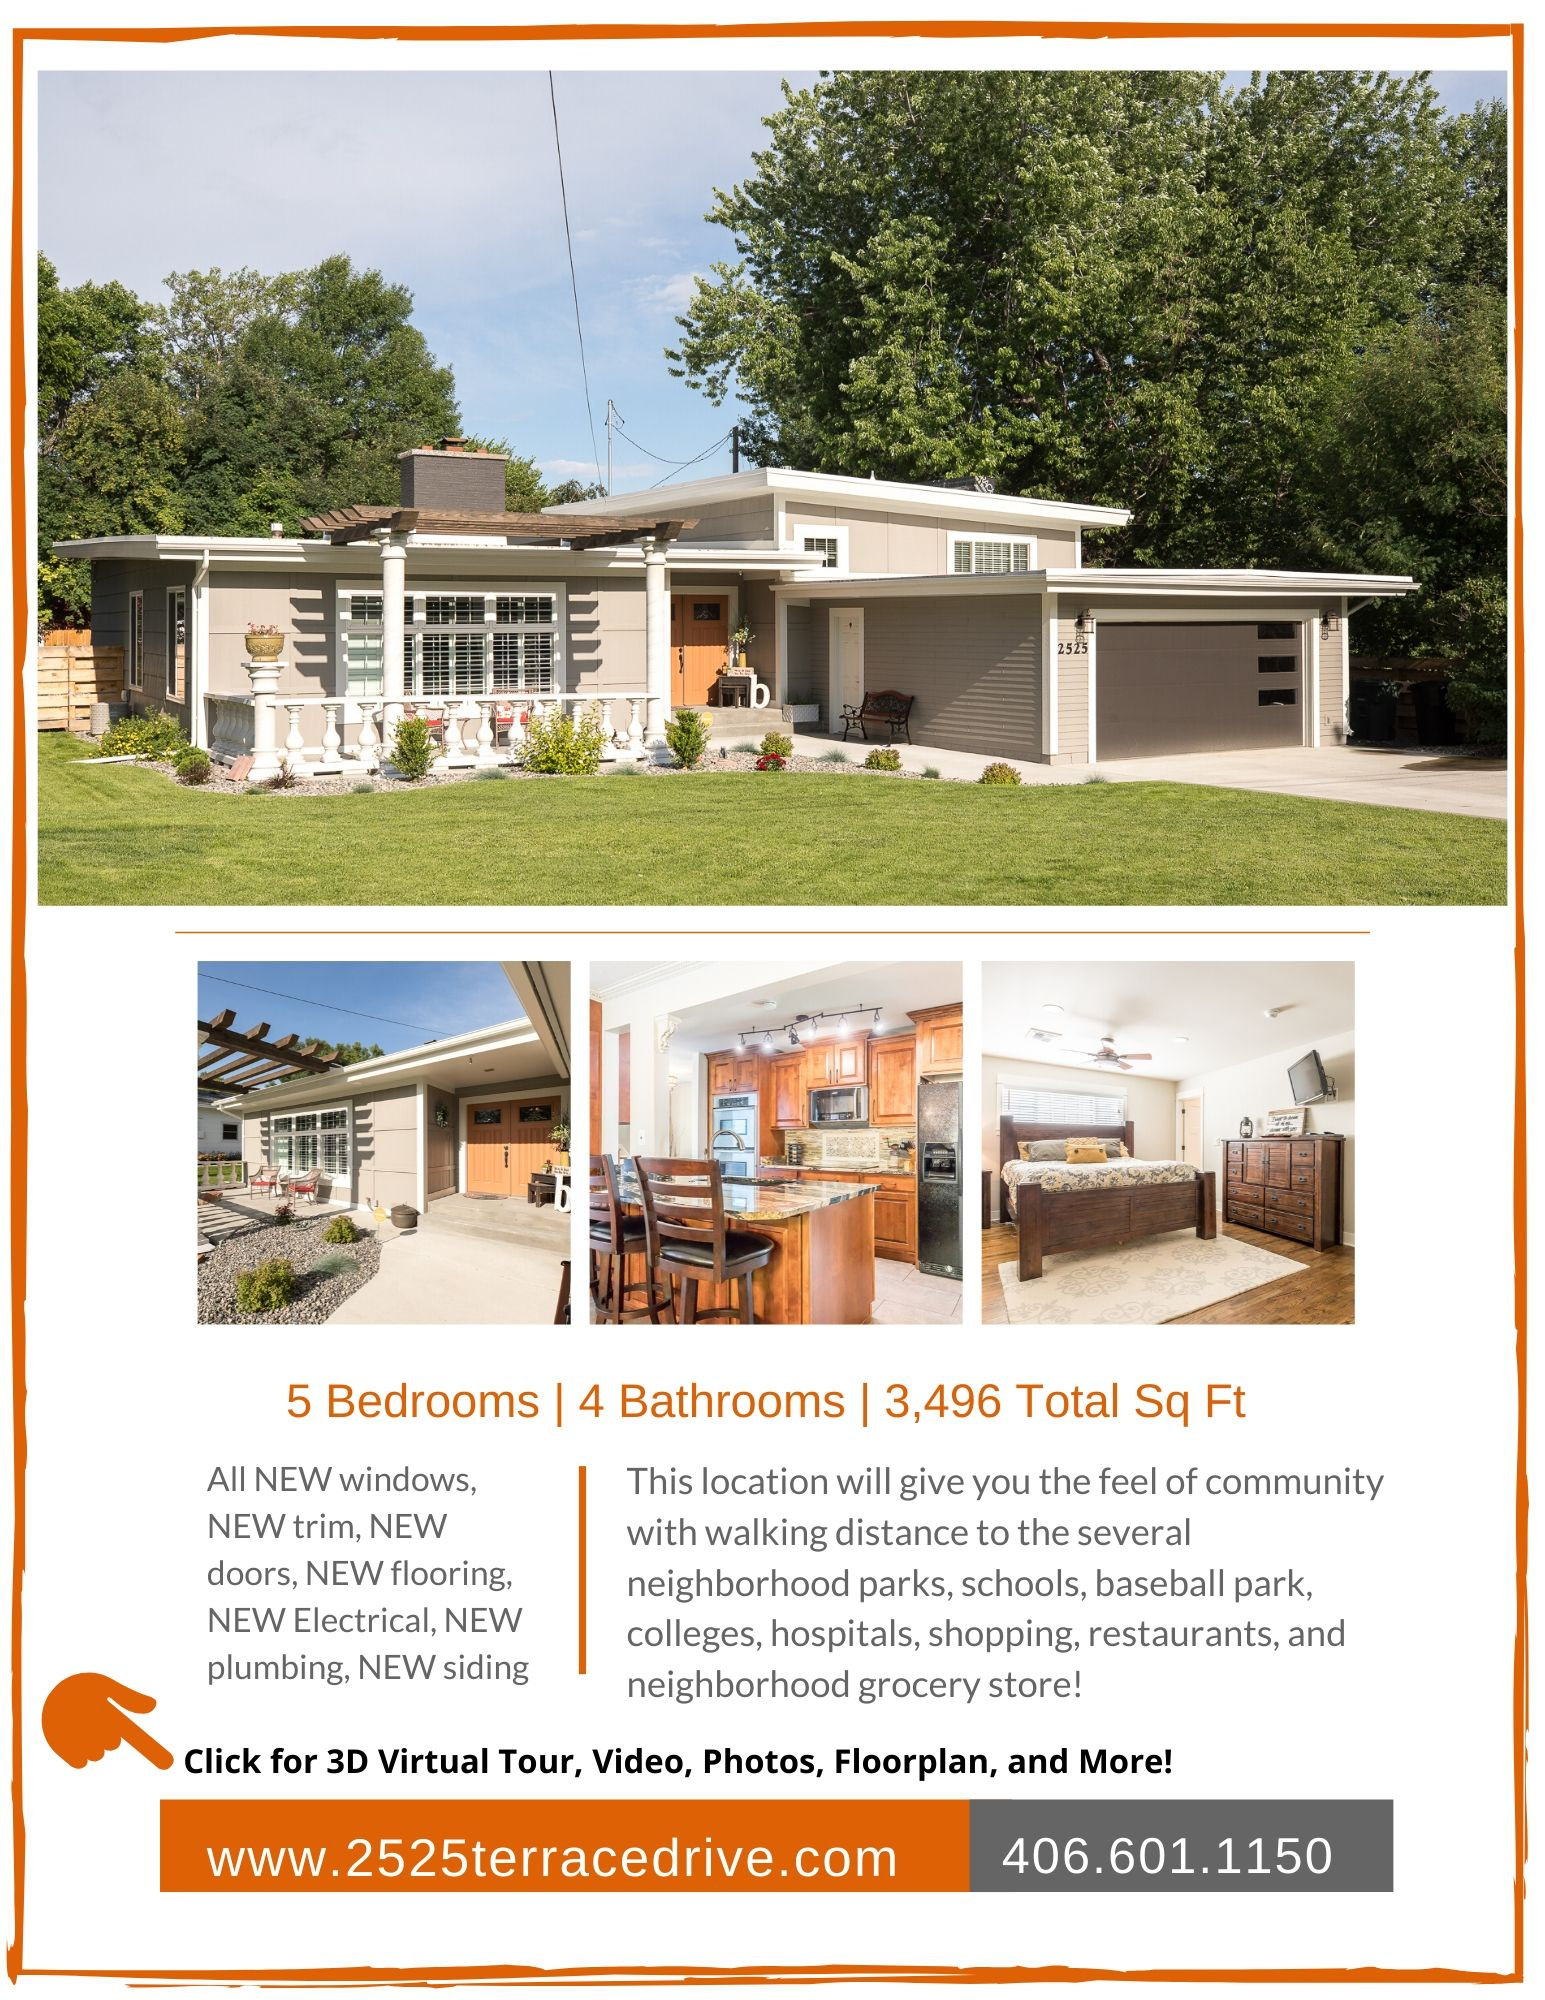 RB Featured Listing of the Week 2525 Terrace